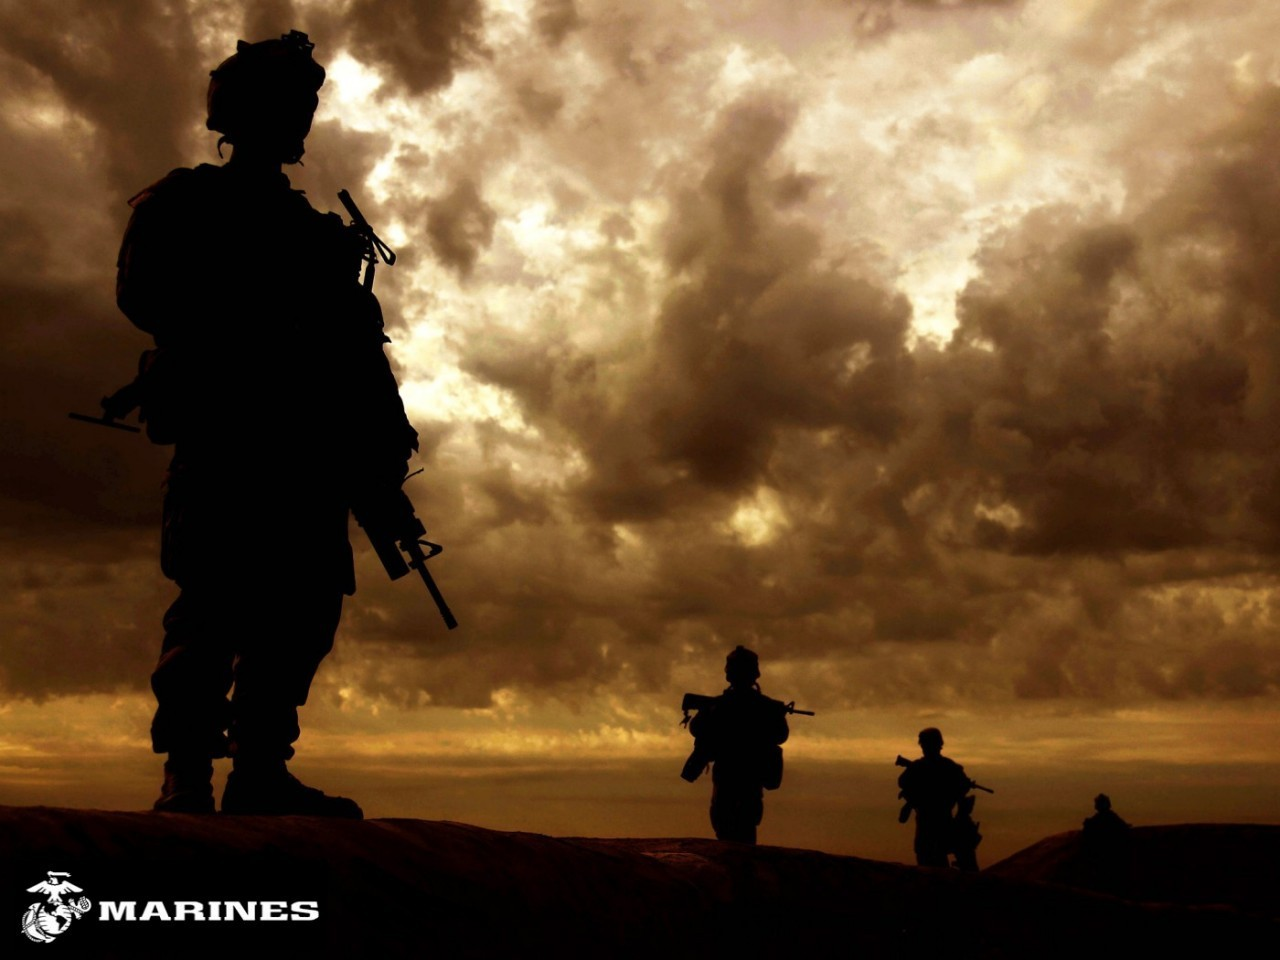 Us Army Infantry Wallpaper 9662 Hd Wallpapers in War n Army   Imagesci 1280x960